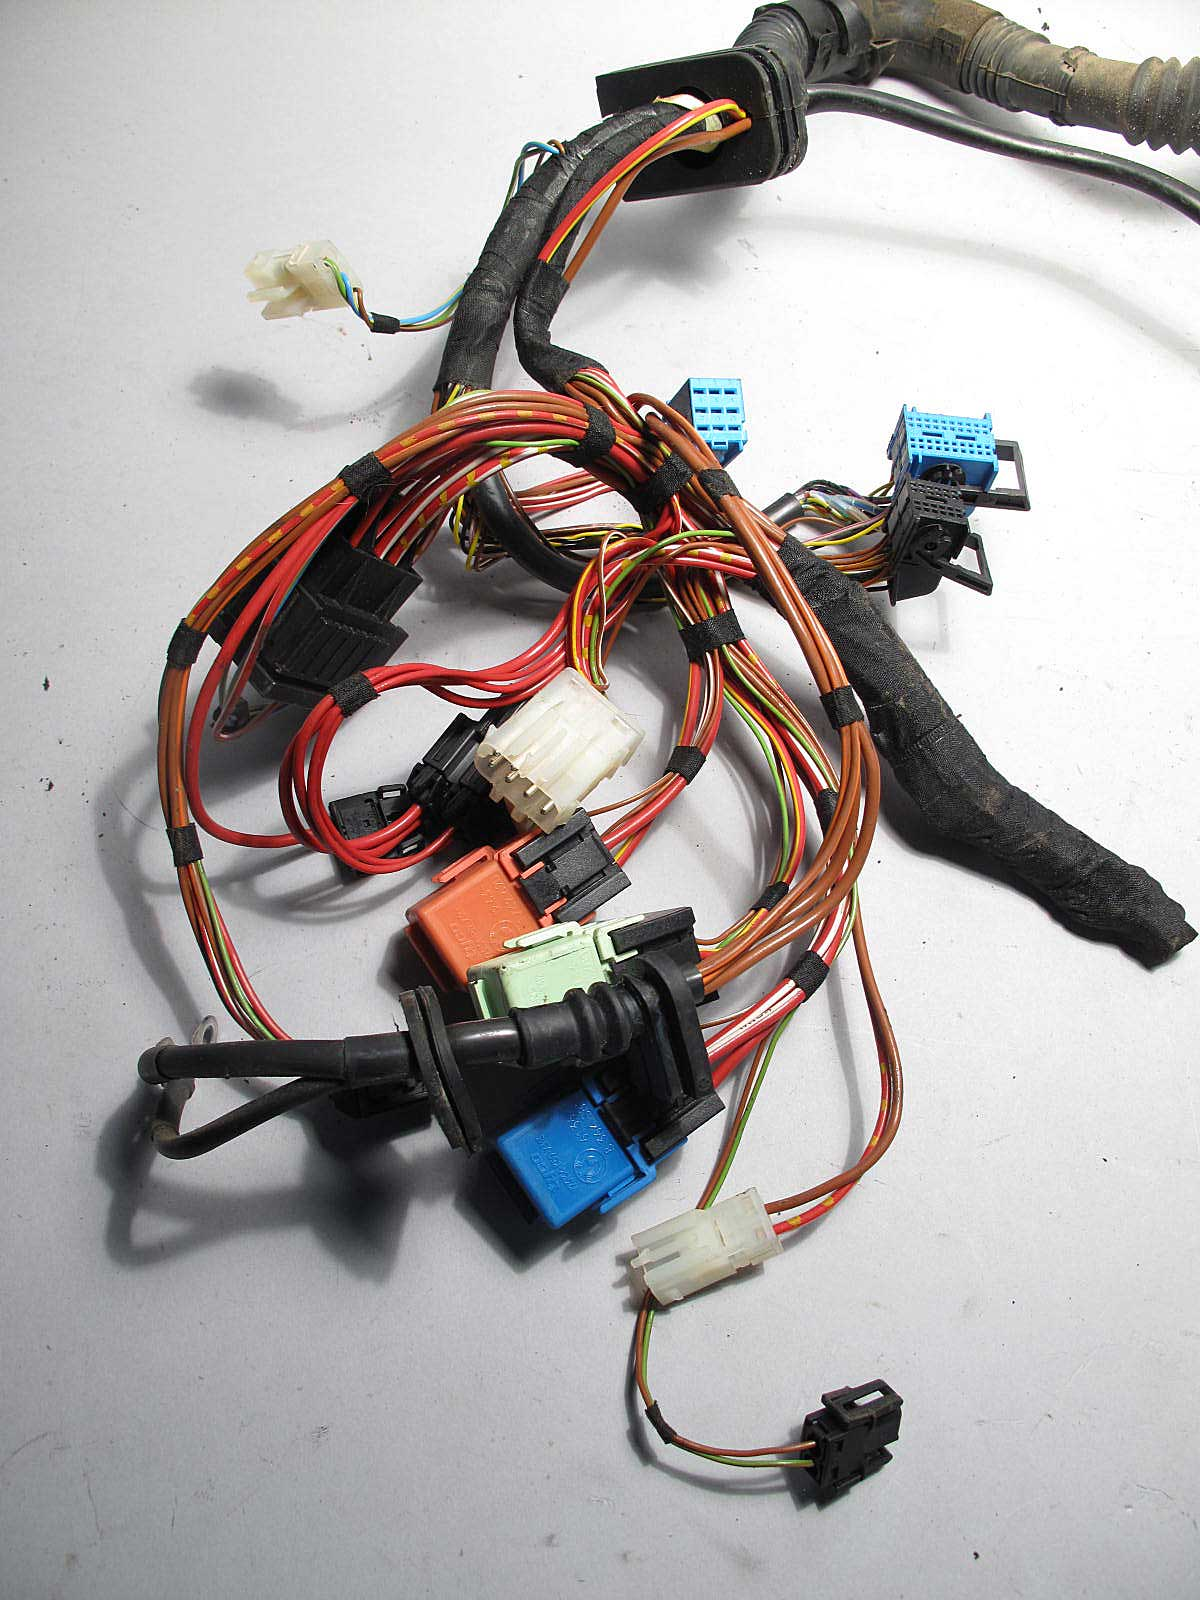 inv_008702_01 bmw z3 roadster coupe m54 automatic transmission wiring harness 1973 bmw 2002 wiring harness at reclaimingppi.co